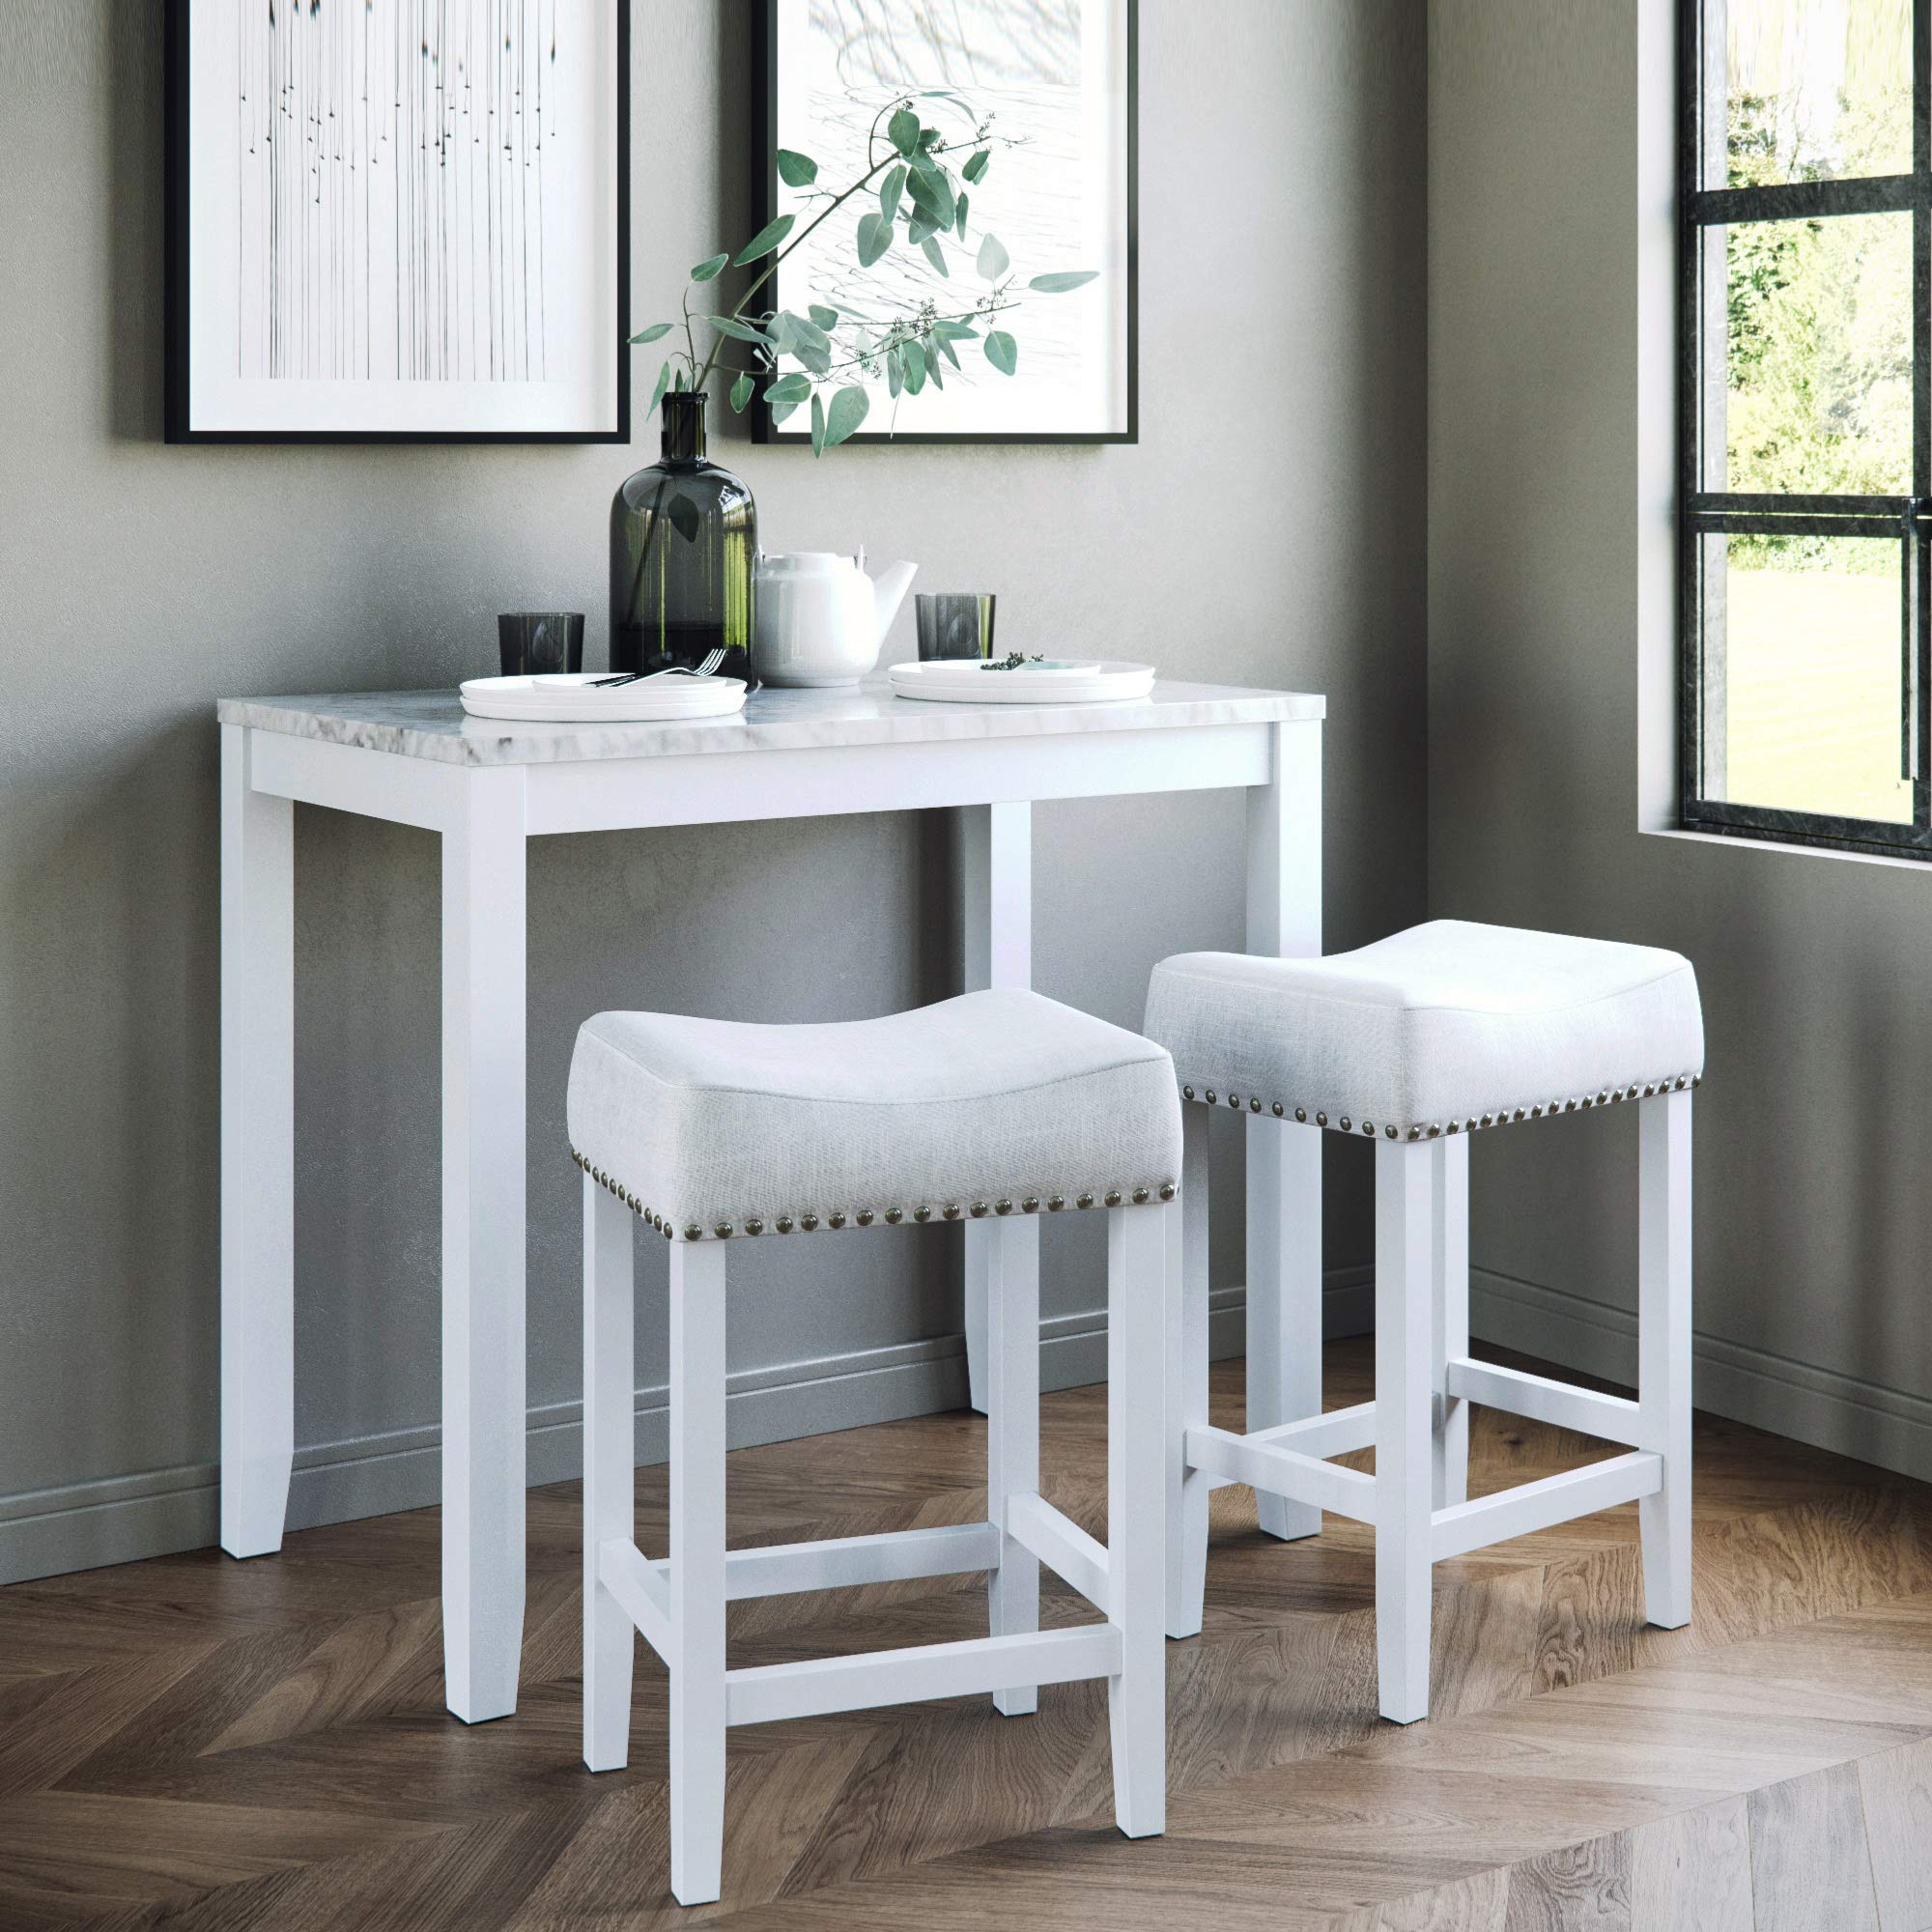 Nathan James 41201 Viktor Dining Set Kitchen Pub Table Marble Top Fabric Seat Wood Base, Light Gray/White by Nathan James